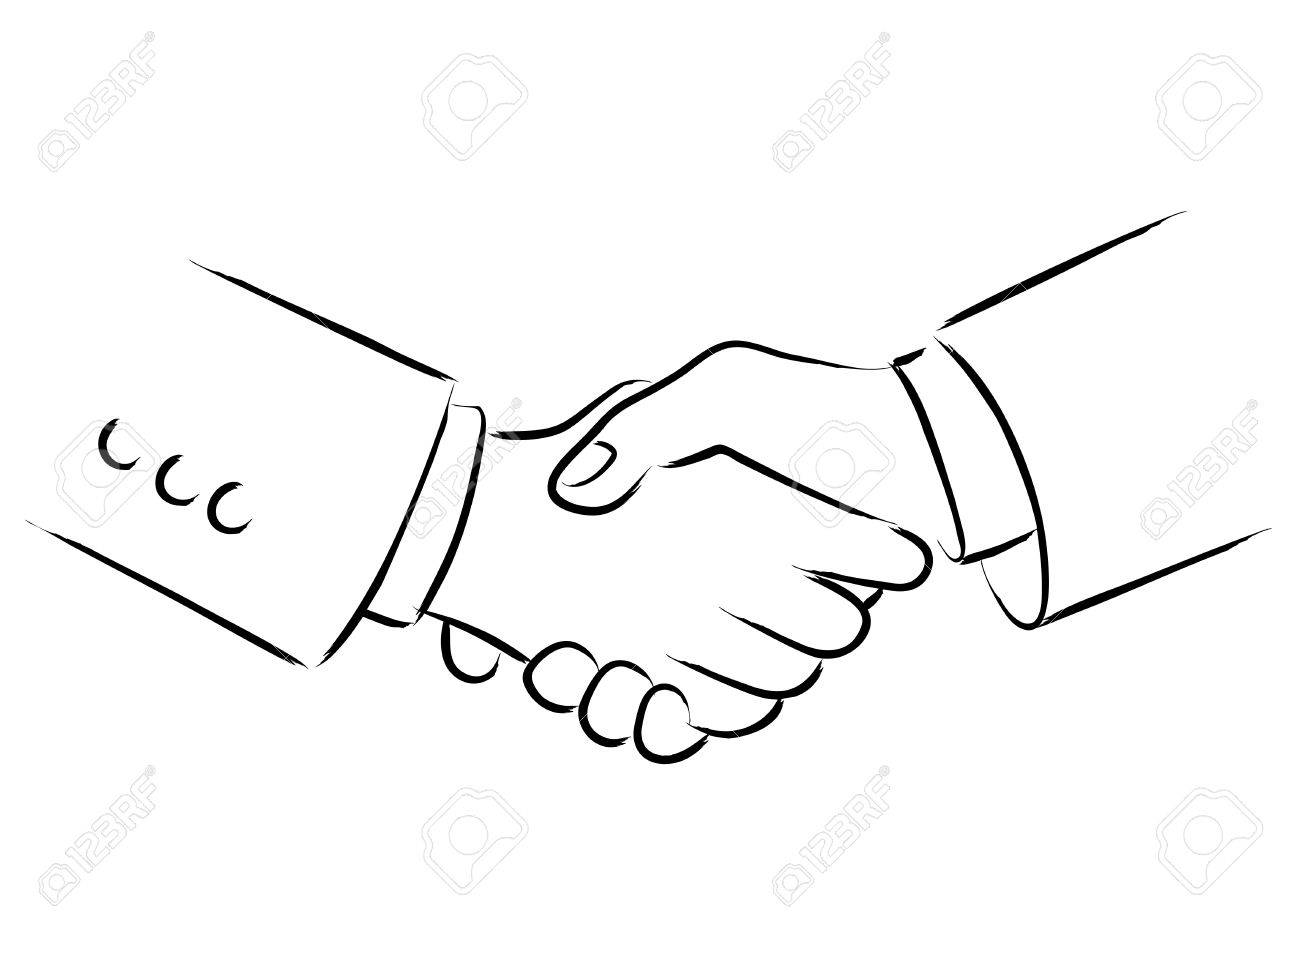 simple line art of shaking hands royalty free cliparts vectors and